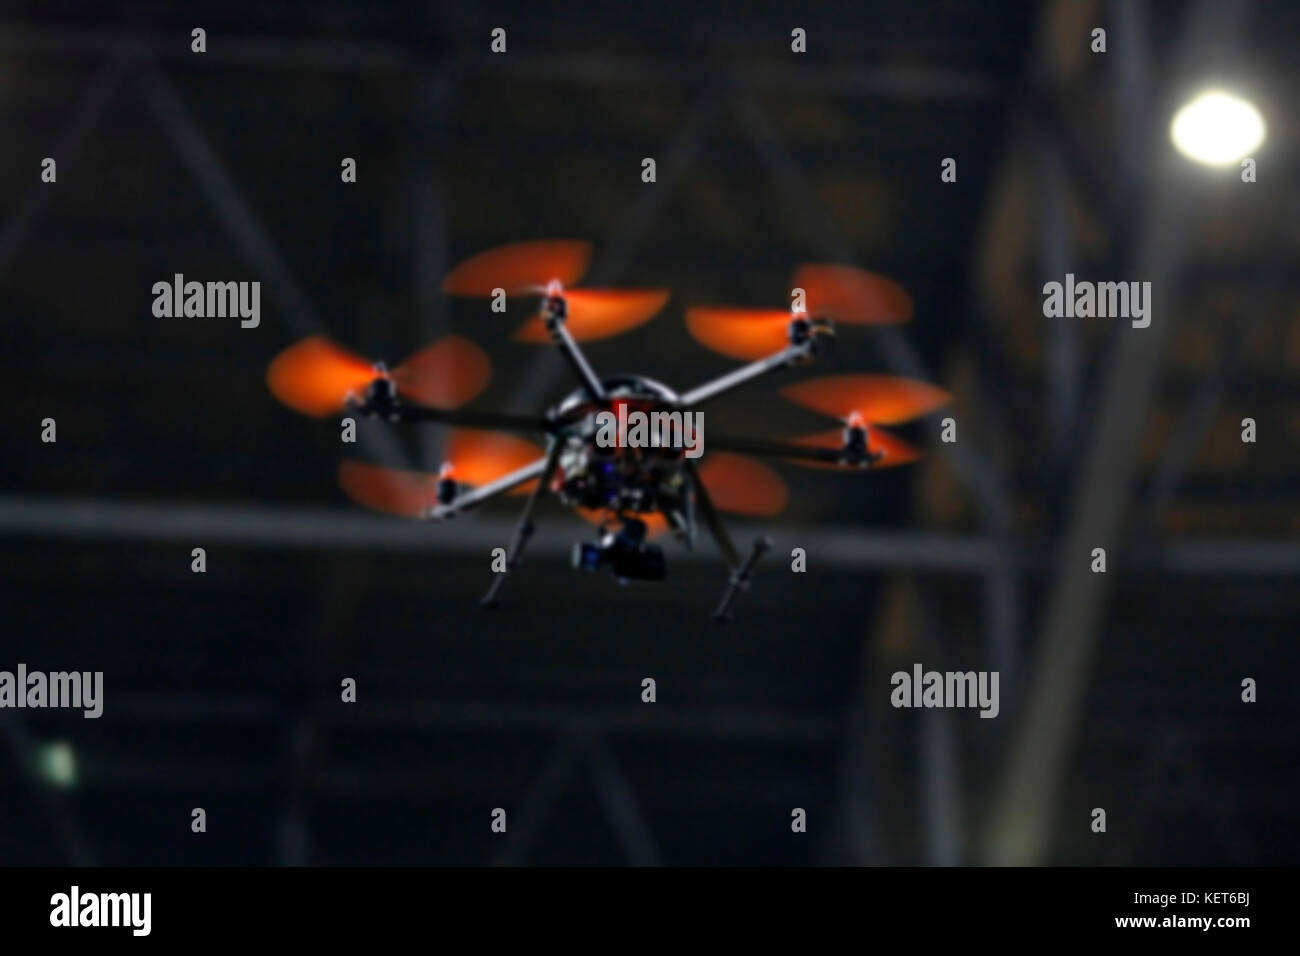 blurry flying drone with camera on the night - Stock Image